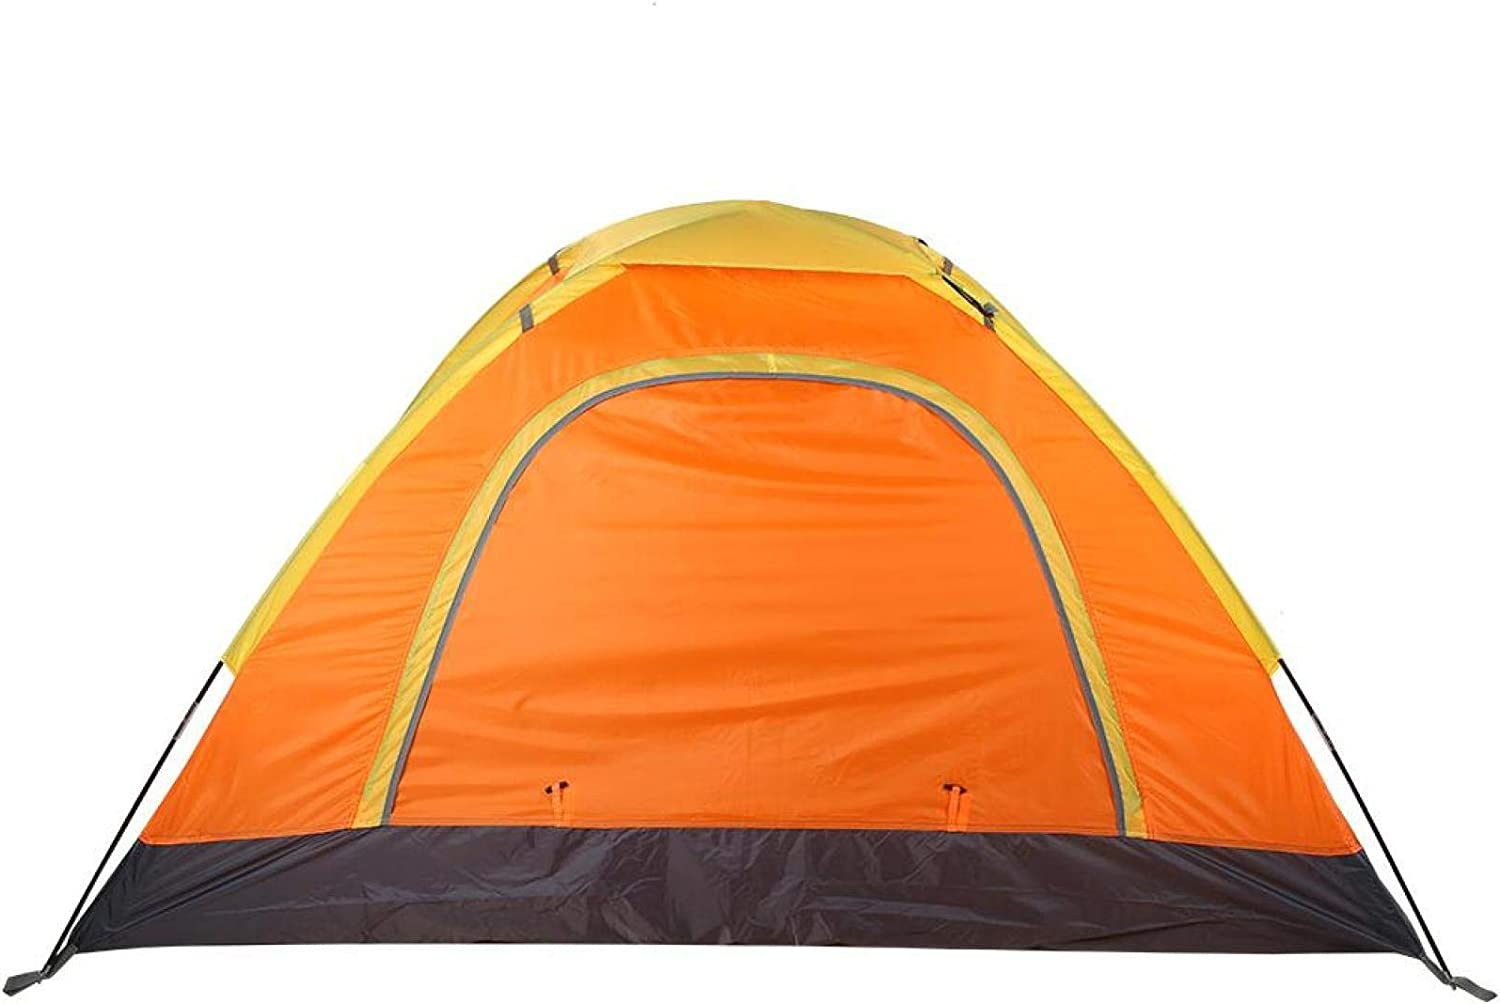 Camping Tent 1-2 People Backpacking New popularity Lightweight Waterproof Save money